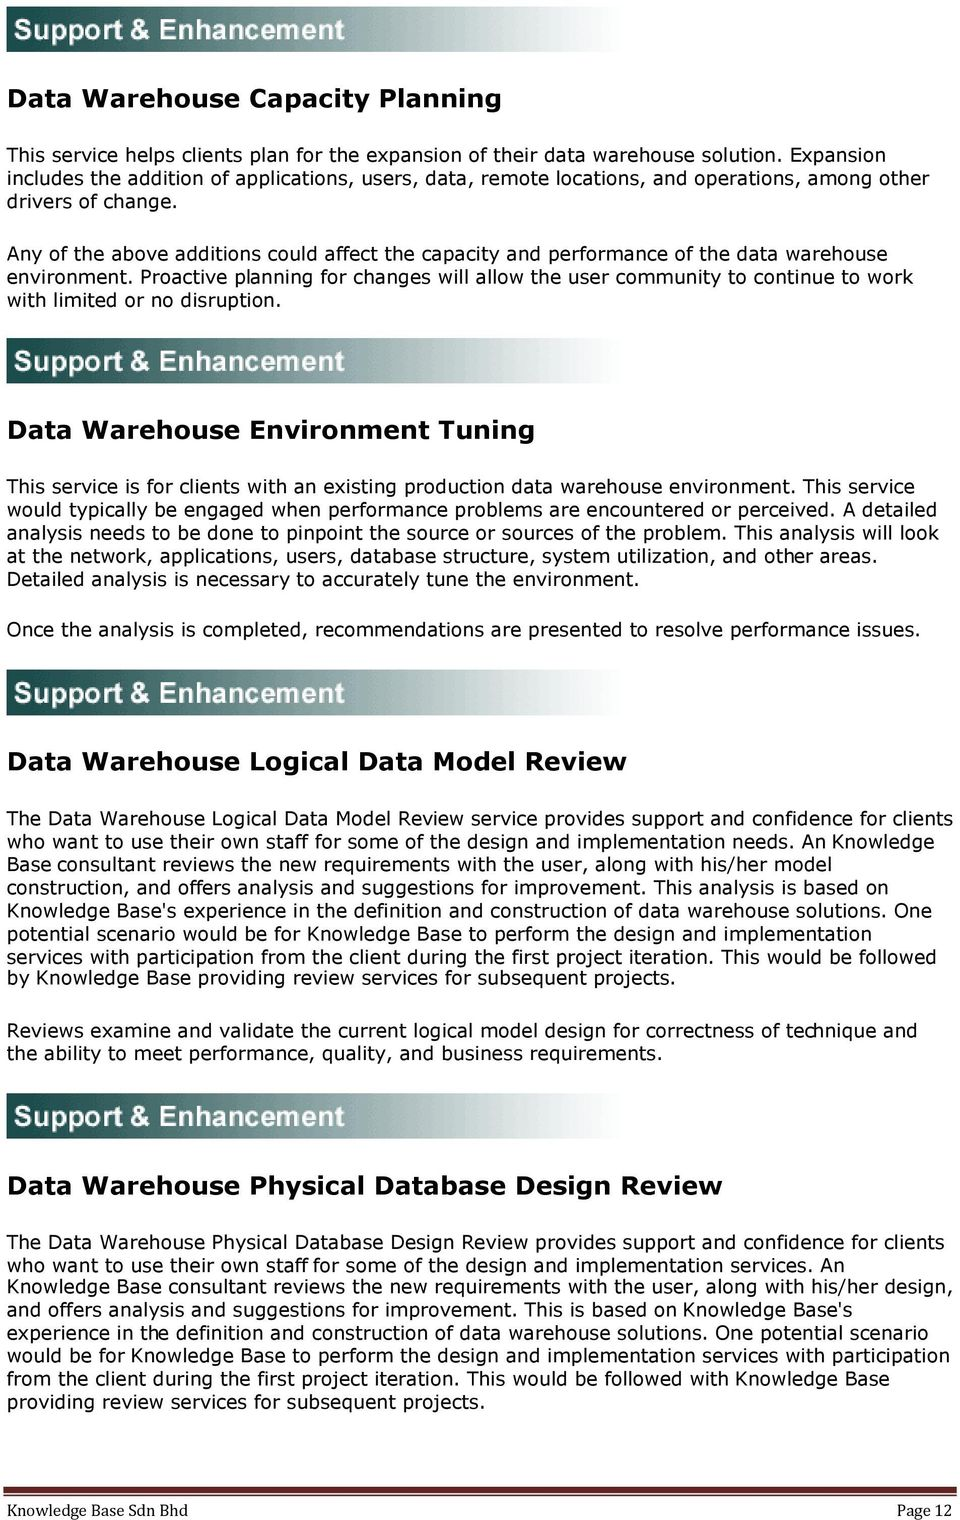 Any of the above additions could affect the capacity and performance of the data warehouse environment.